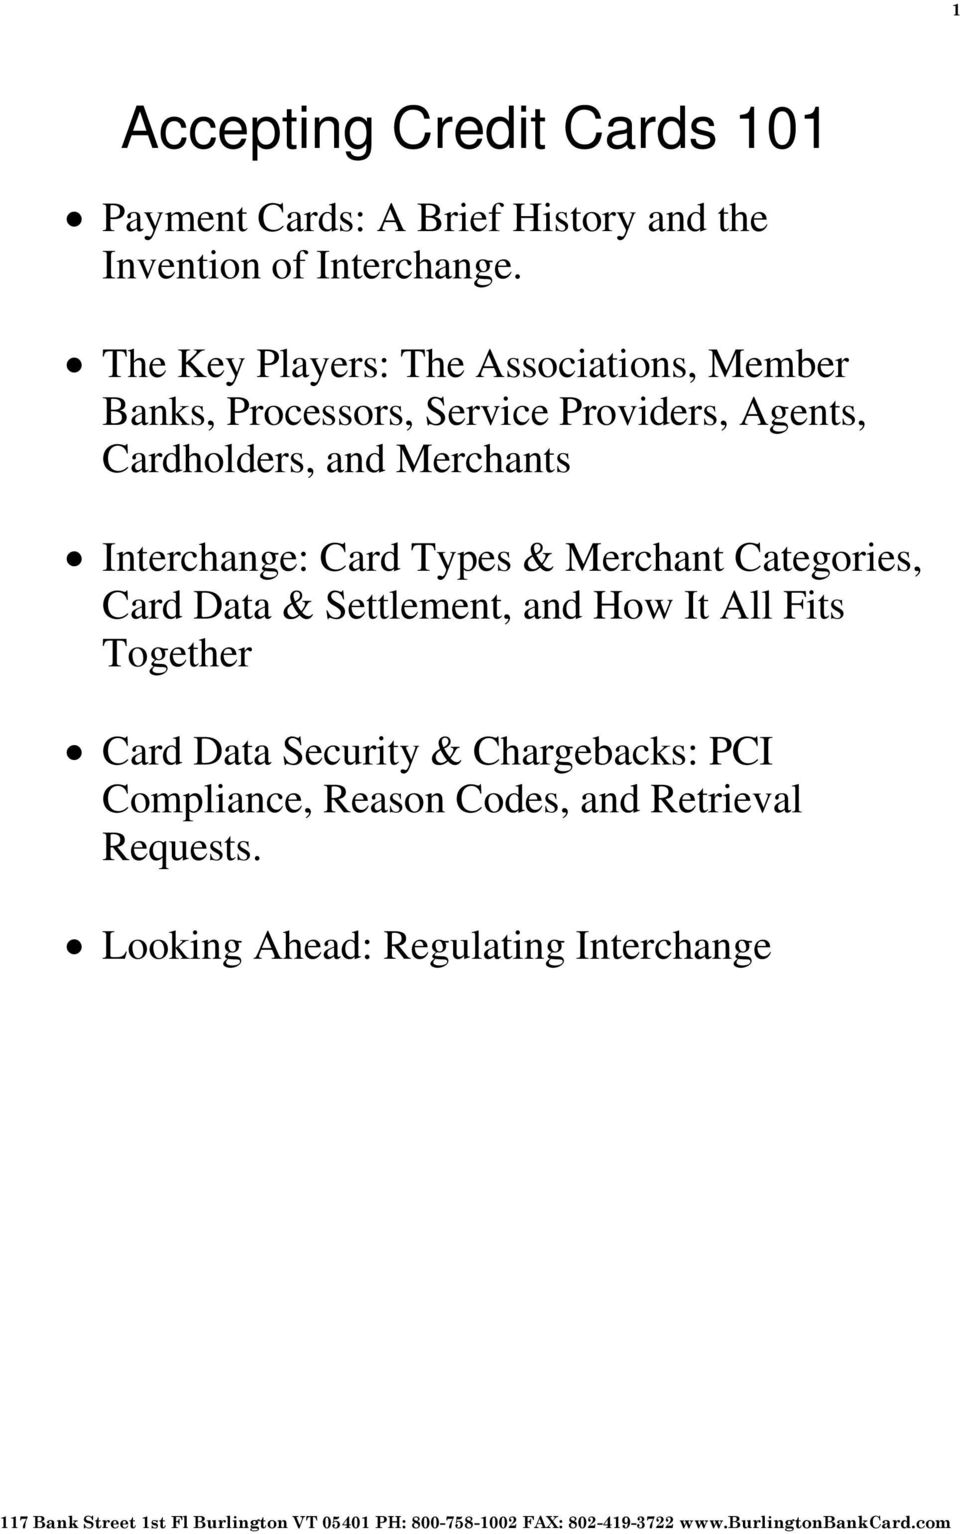 Cardholders, and Merchants : Card Types & Merchant Categories, Card Data & Settlement, and How It